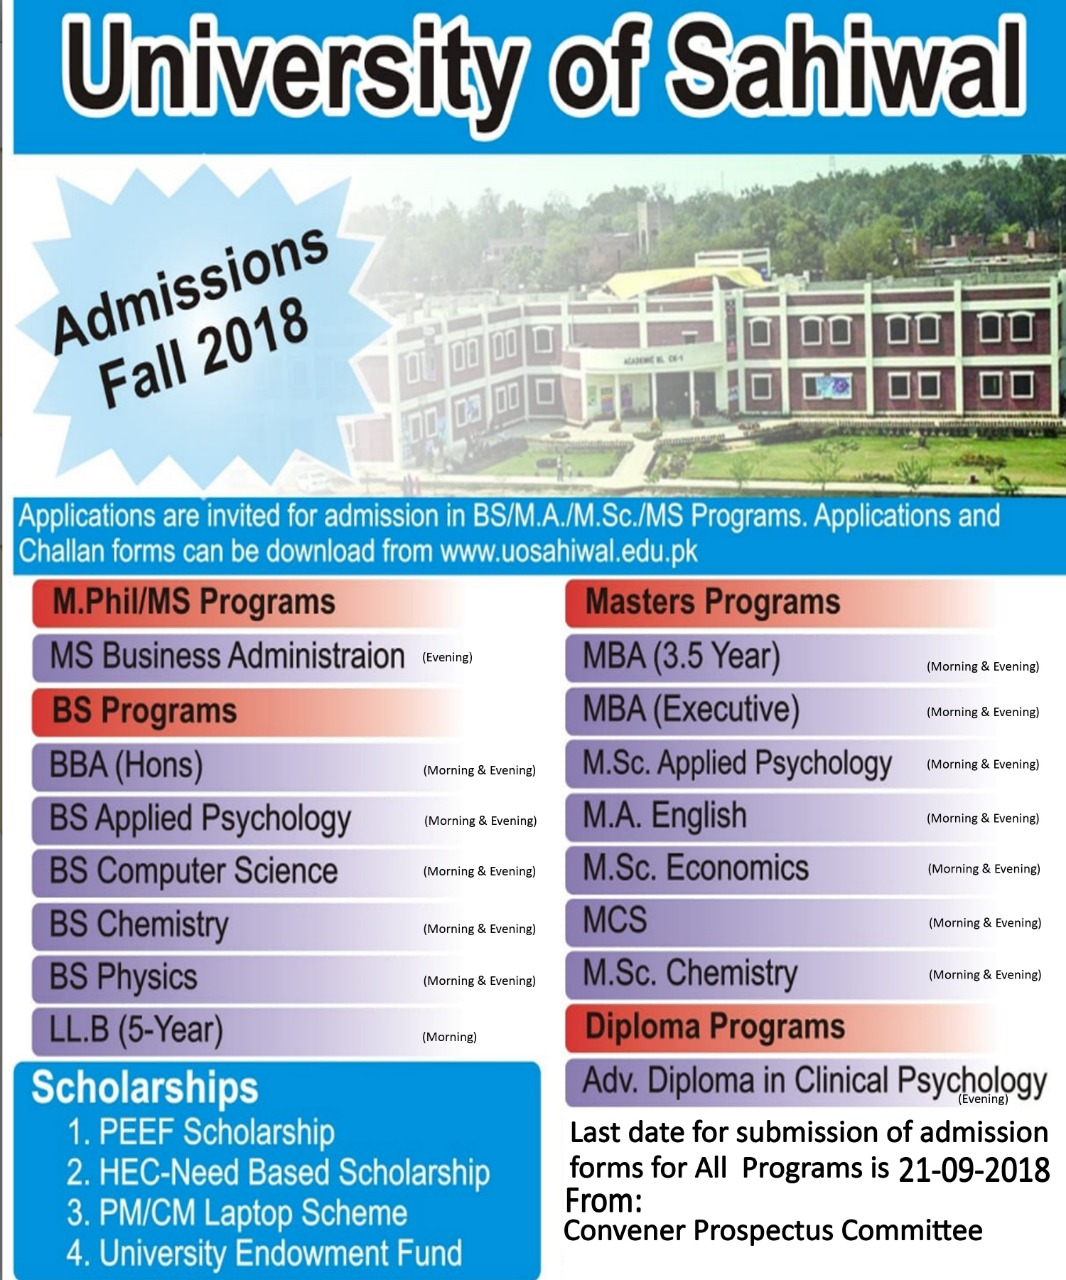 University of Sahiwal – Admissions Fall 2018